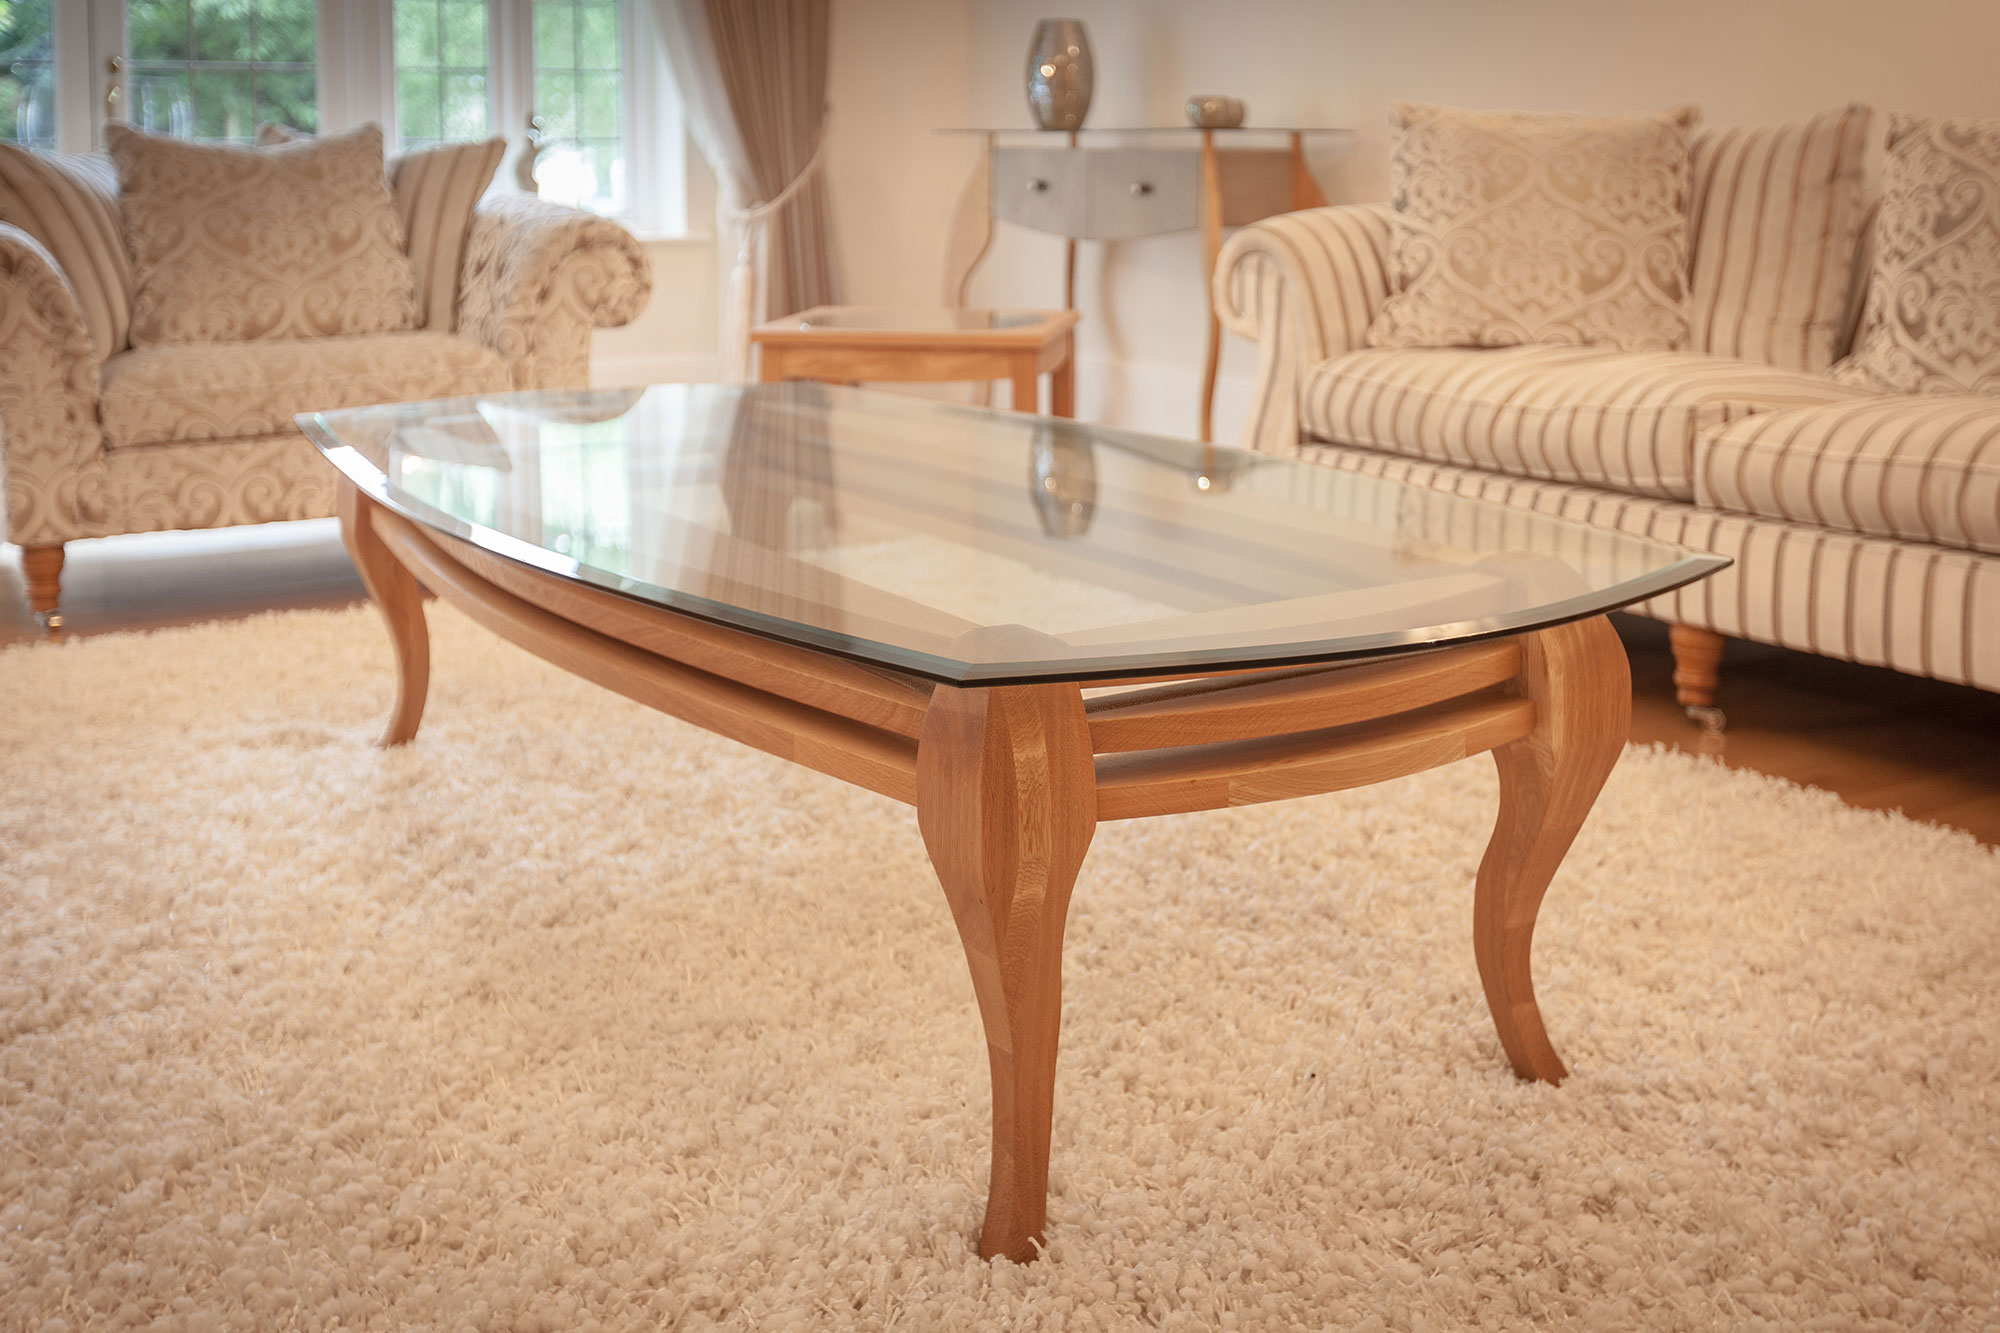 Coffee Table - 'Queen Ann' Leg